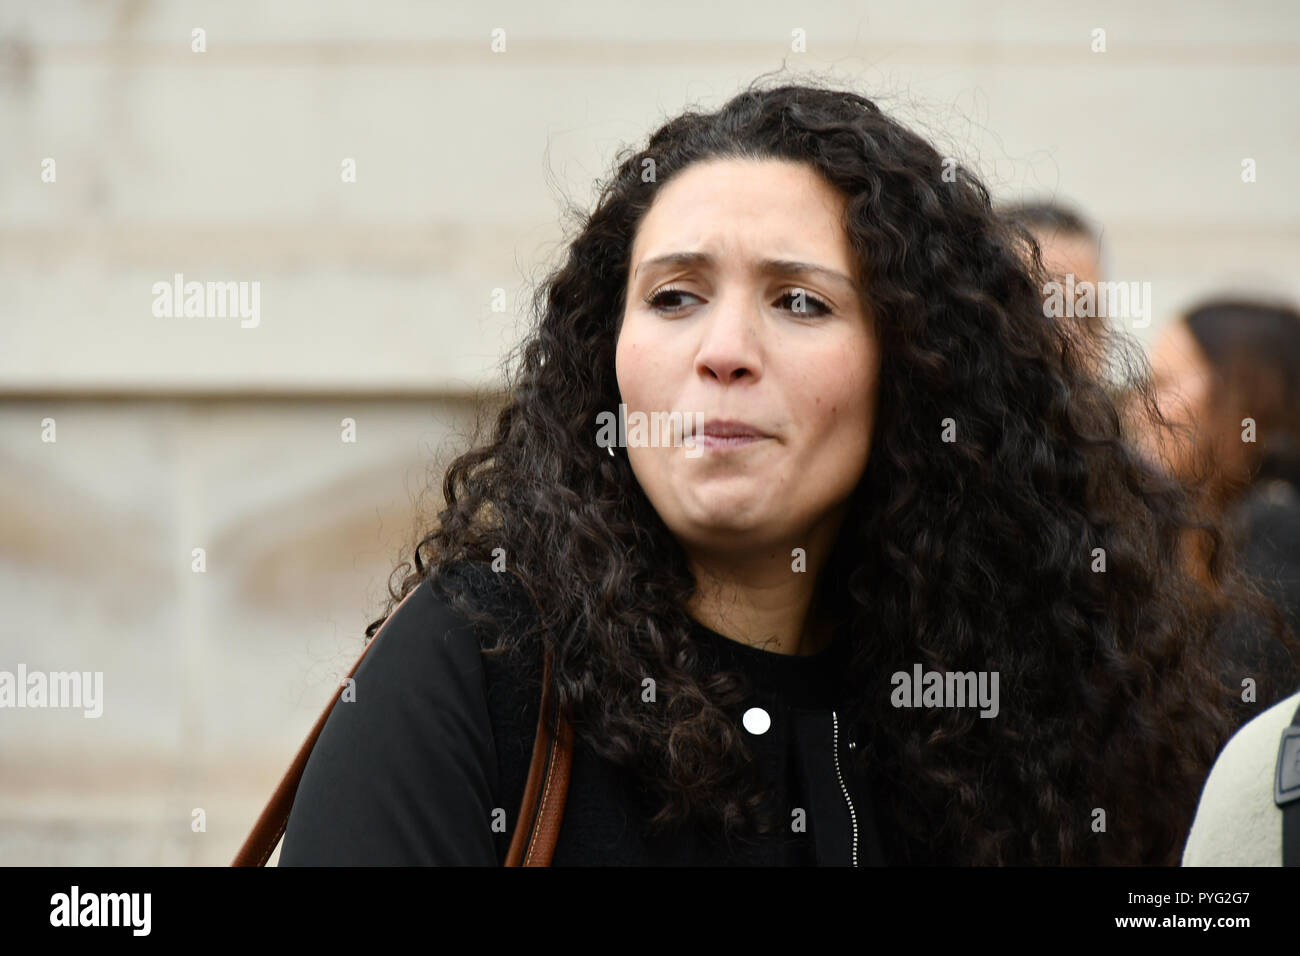 London, UK. 27th October 2018. Malia Bouattia join the United Families and Friends Campaign (UFFC) 20th Anniversary Procession march to Downing Street demand ask demand justice for their love one killed by polices on 27 October 2018, London, UK. Credit: Picture Capital/Alamy Live News - Stock Image